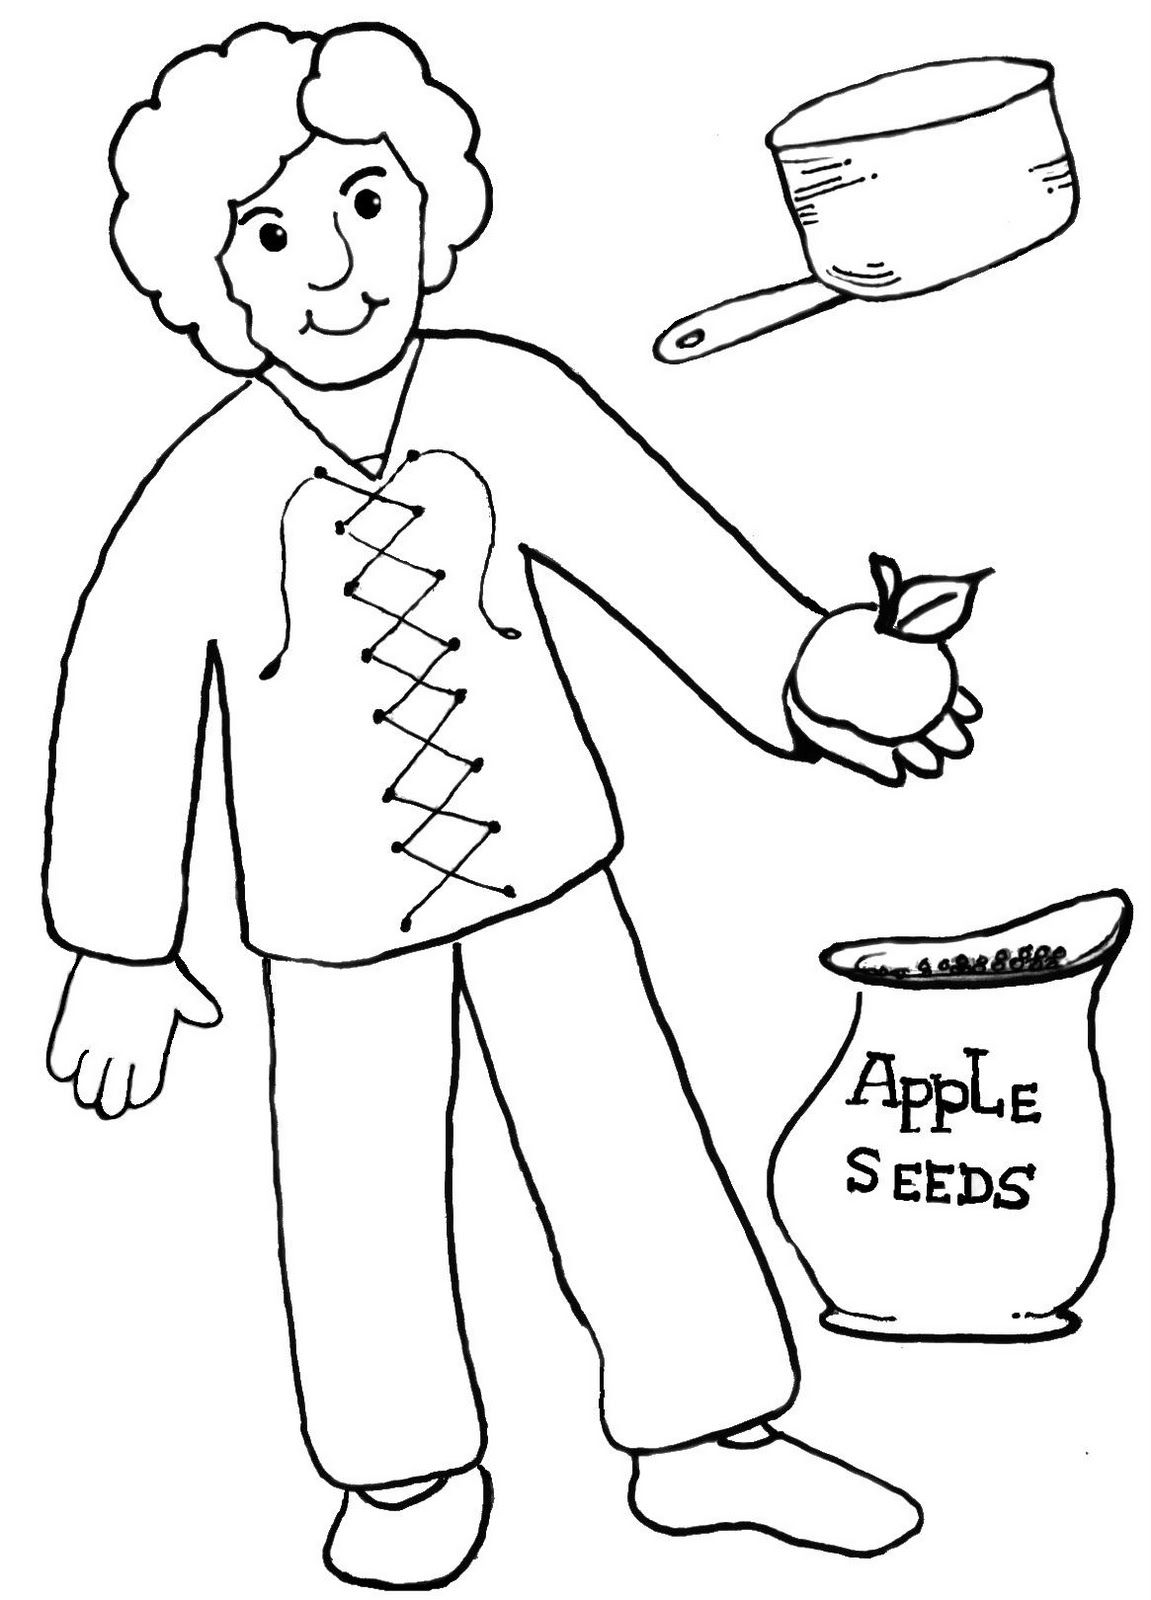 Johnny Appleseed Coloring Pages Apple Coloring Pages Apple